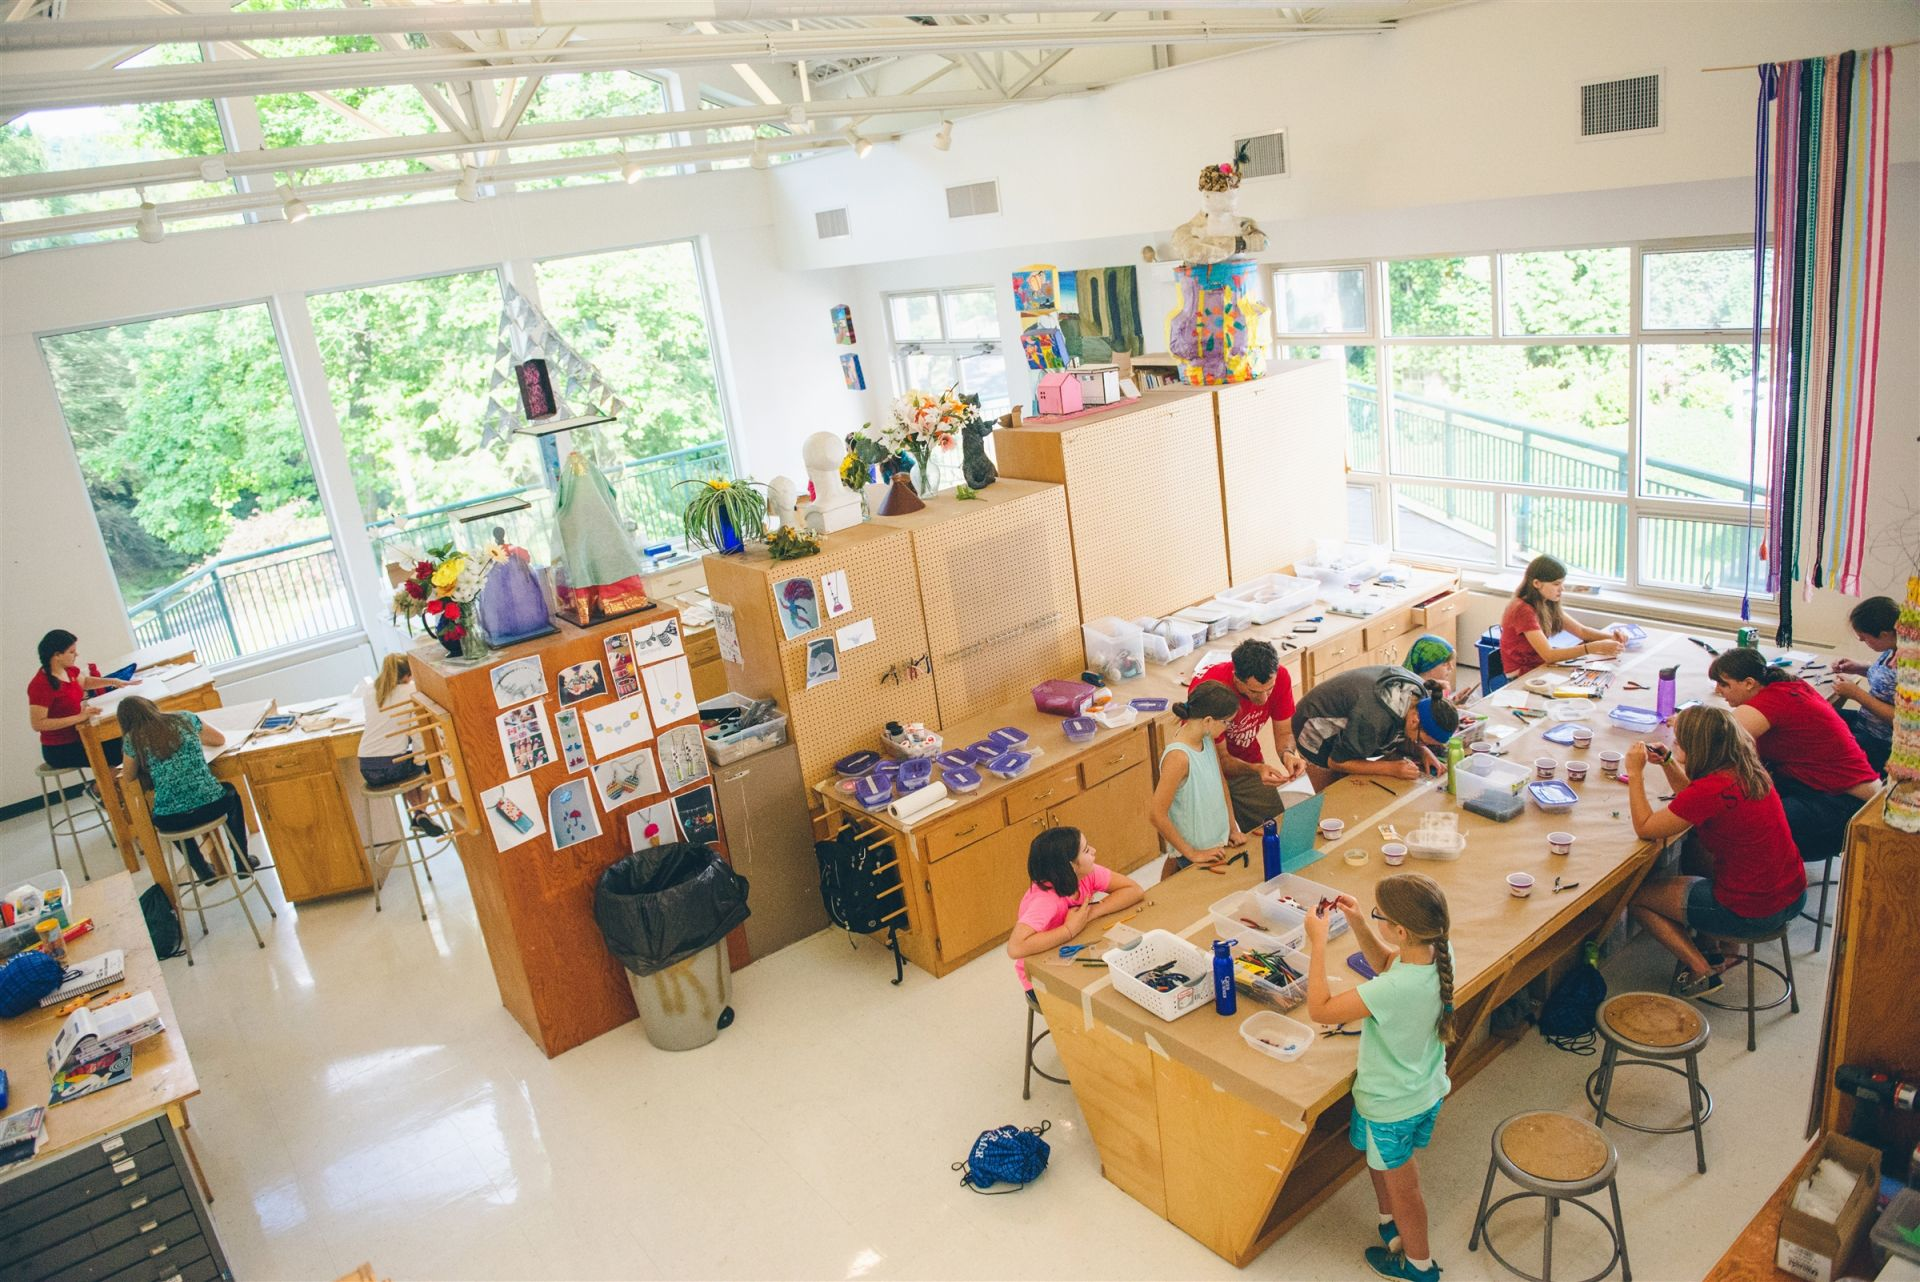 The art building is designed to inspire creativity within our campers. From its multitude of windows which shower the space with natural light to the 4 separate group work areas, campers and instructors create side by side. Summer art classes in painting/drawing, jewelry, printmaking, and mixed media typically occur here.